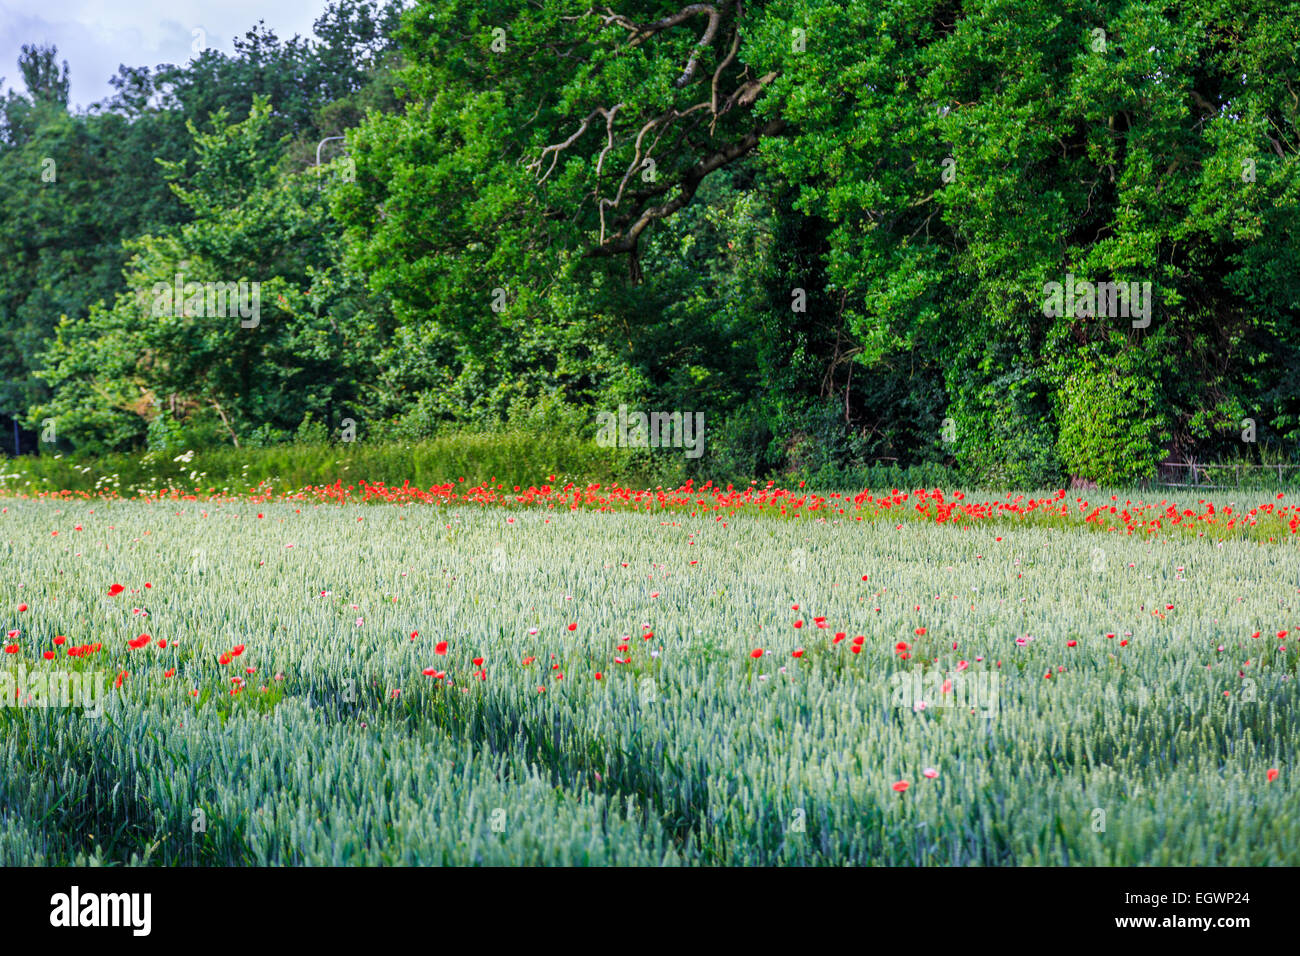 A Poppy field in Bewdley, Near Kinver, Kidderminster & Cookley, Worcestershire in the UK - Stock Image